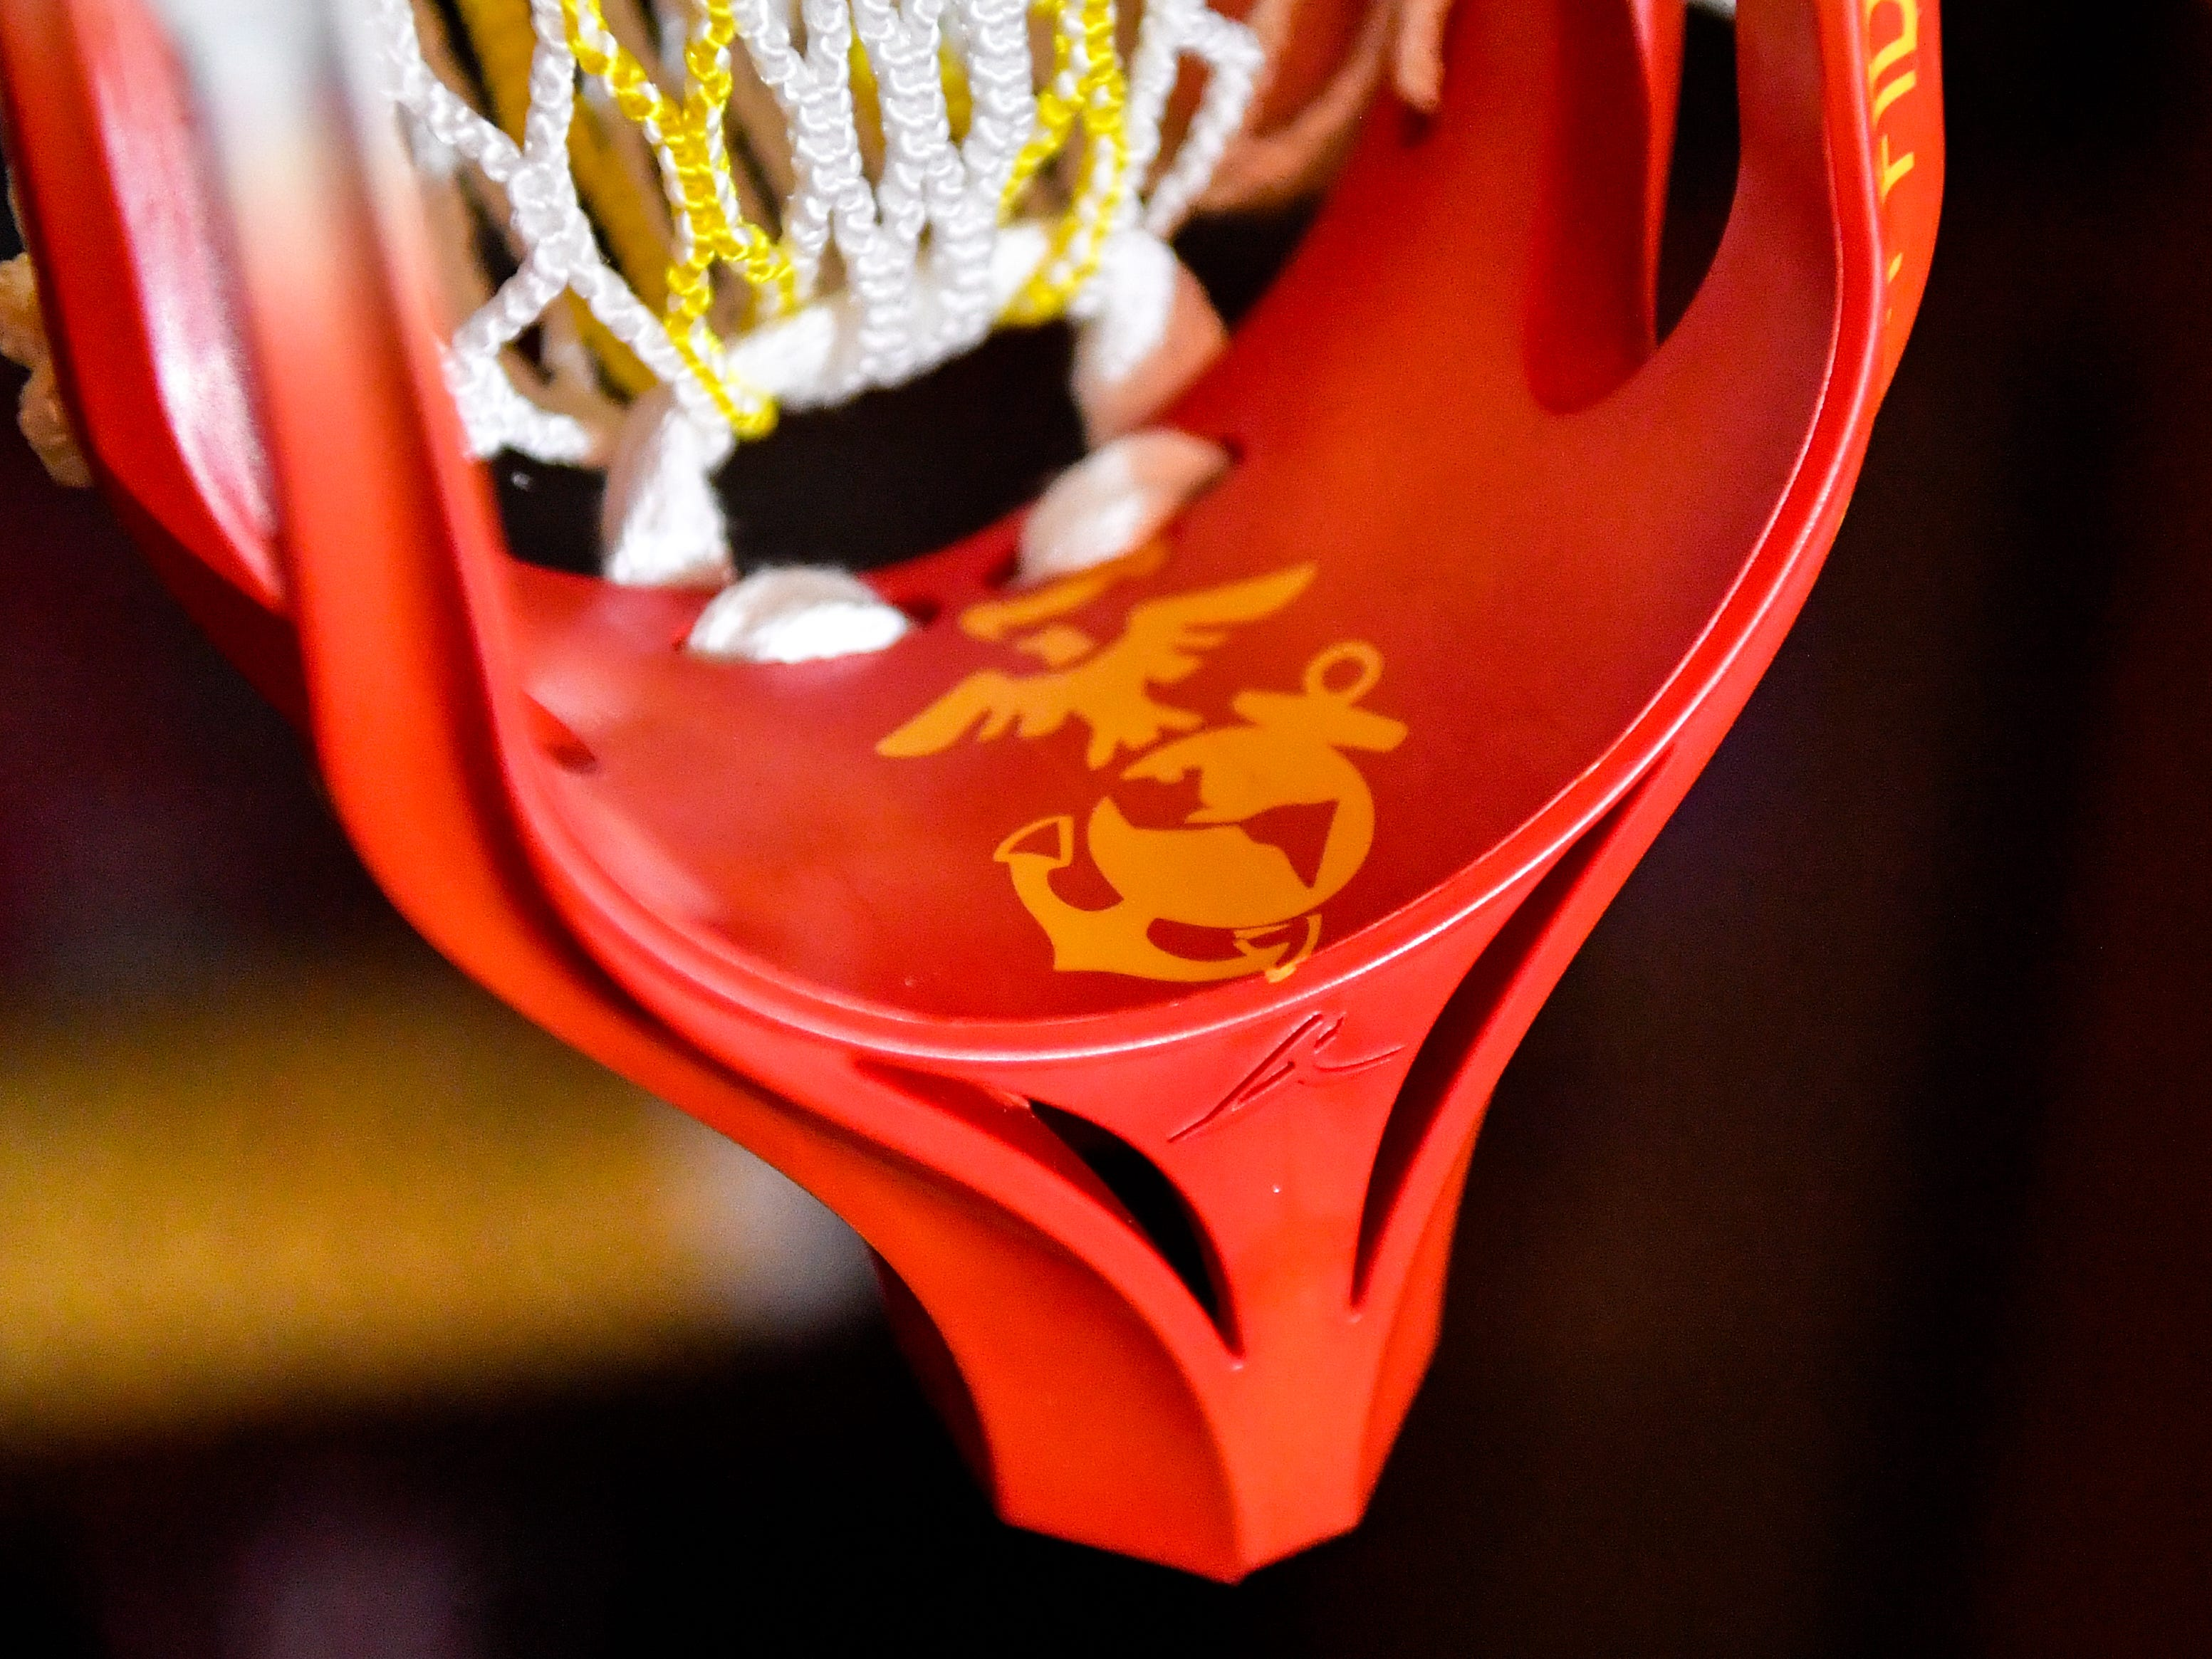 The United States Marine Corps. crest is engraved on the inside of Brendan O'Connor's lacrosse stick.